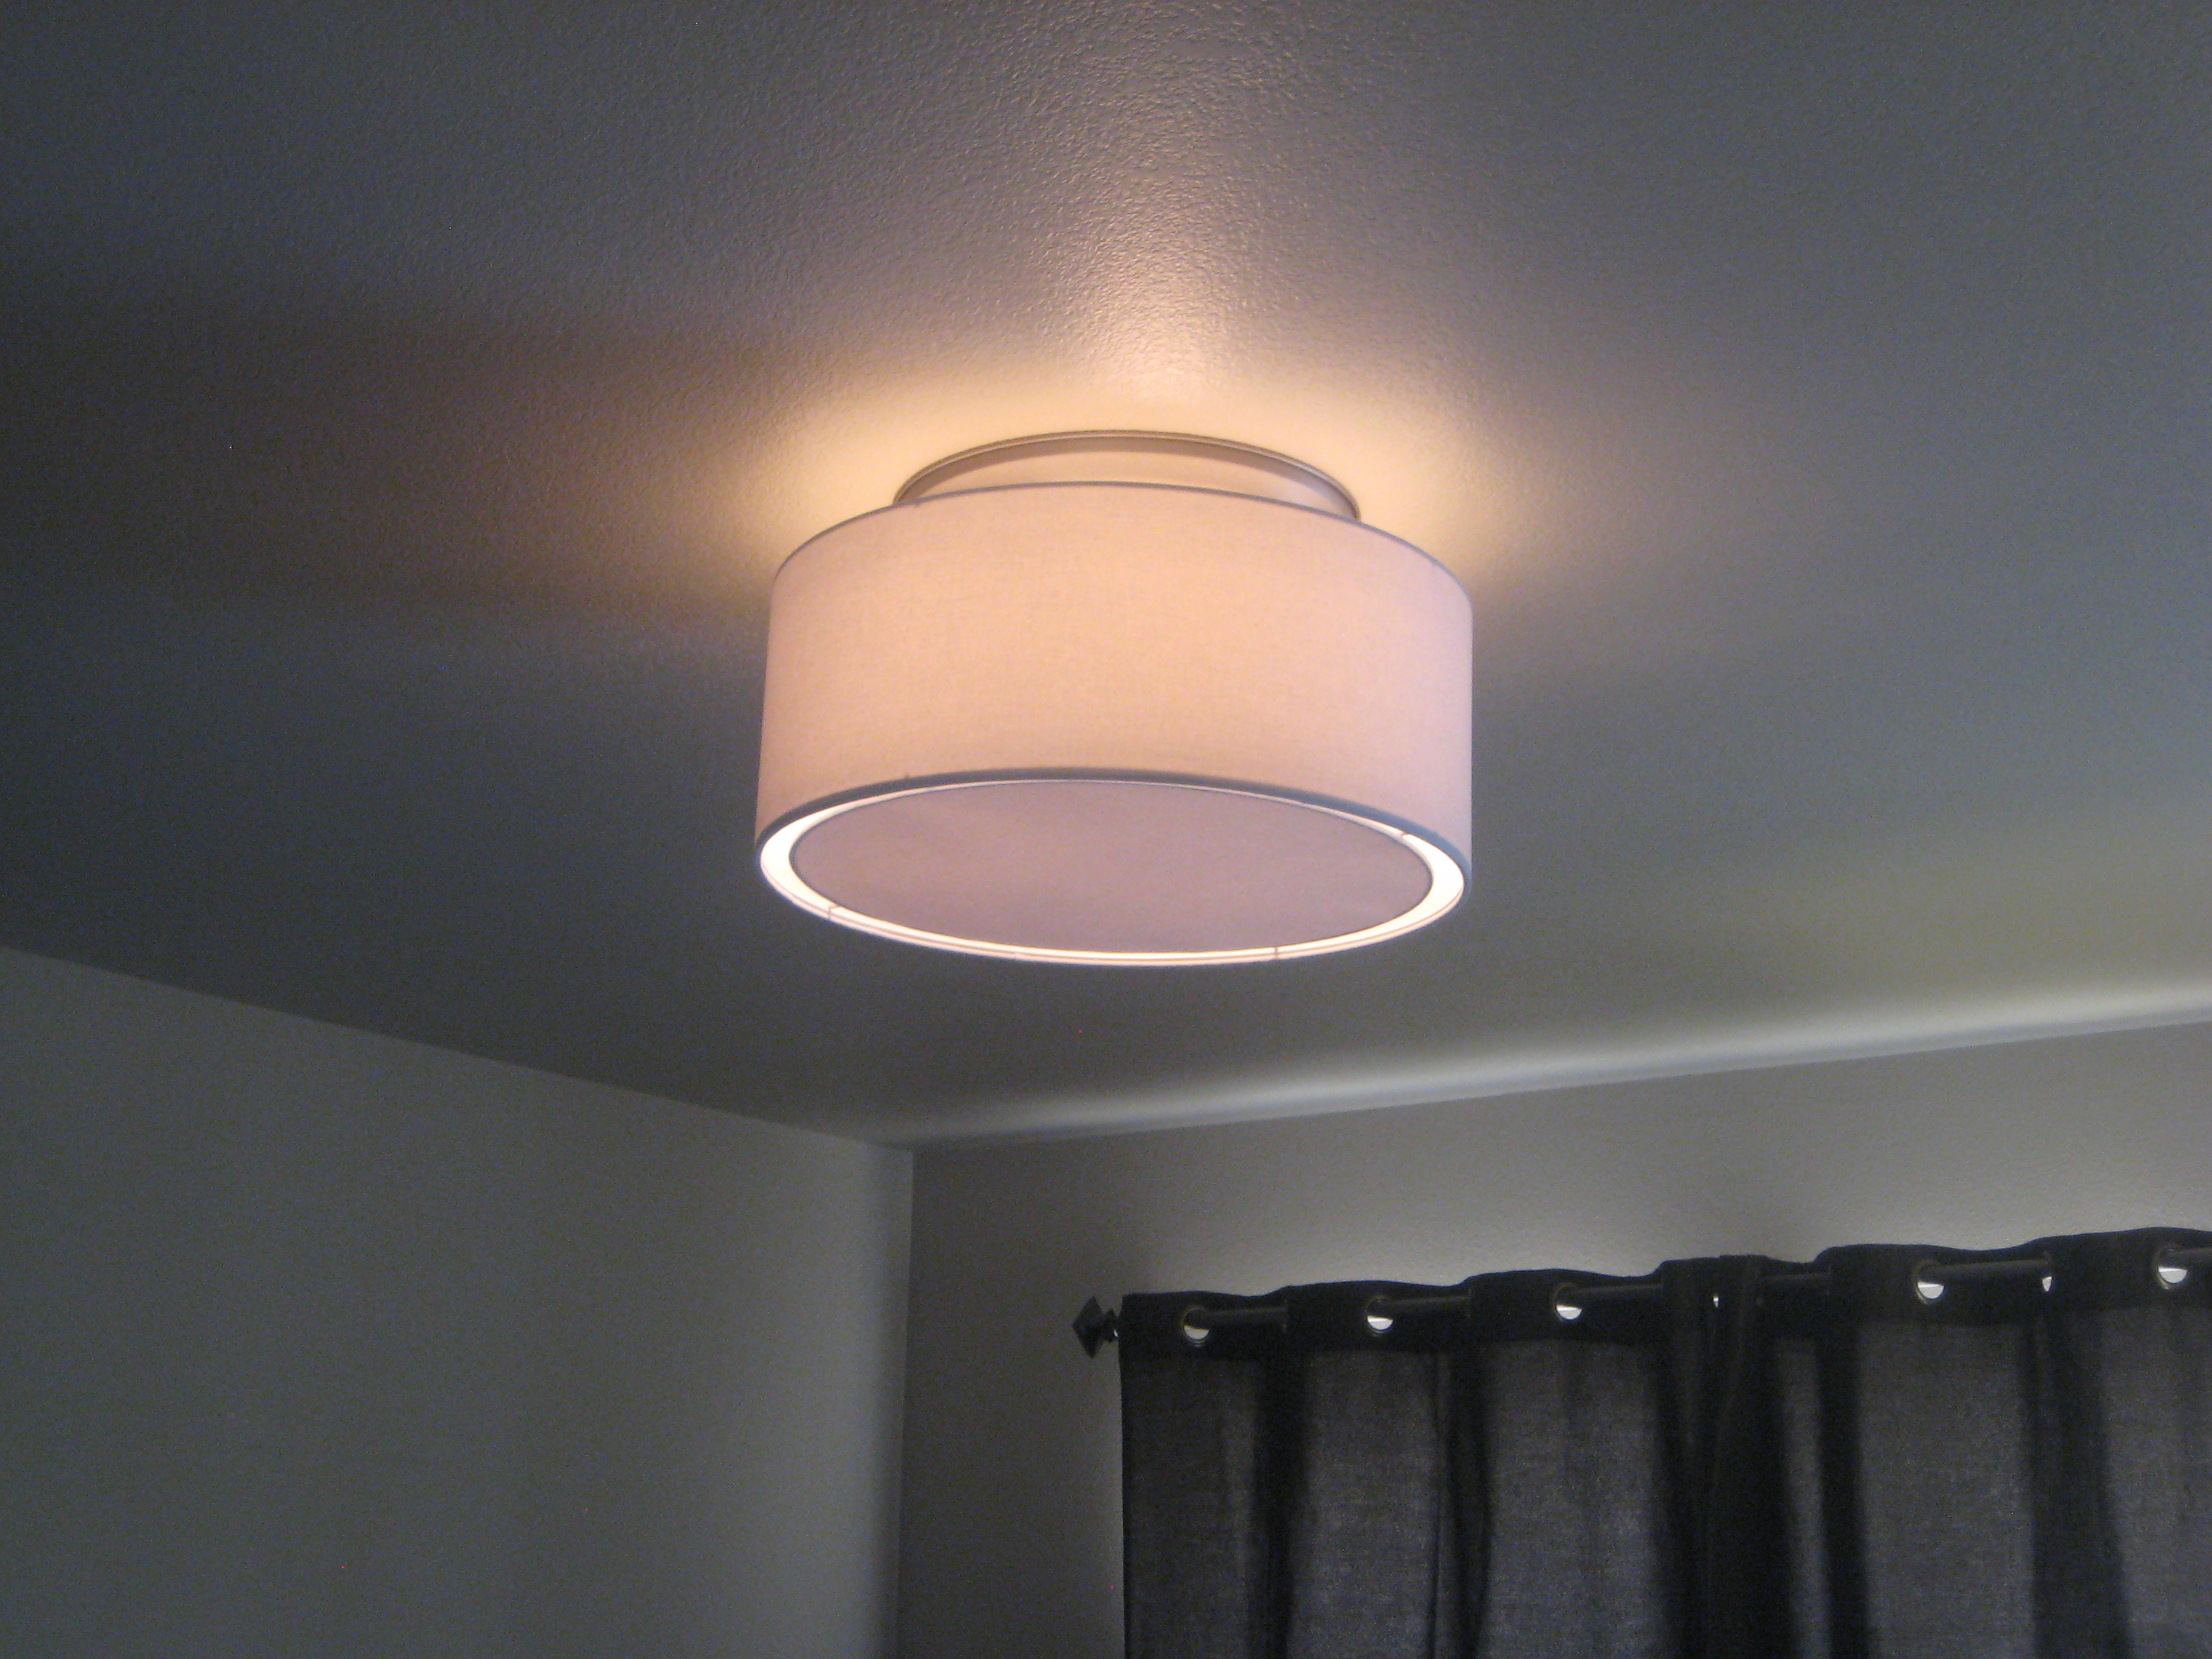 Lamp Shade With Diffuser Display Product Reviews For In X